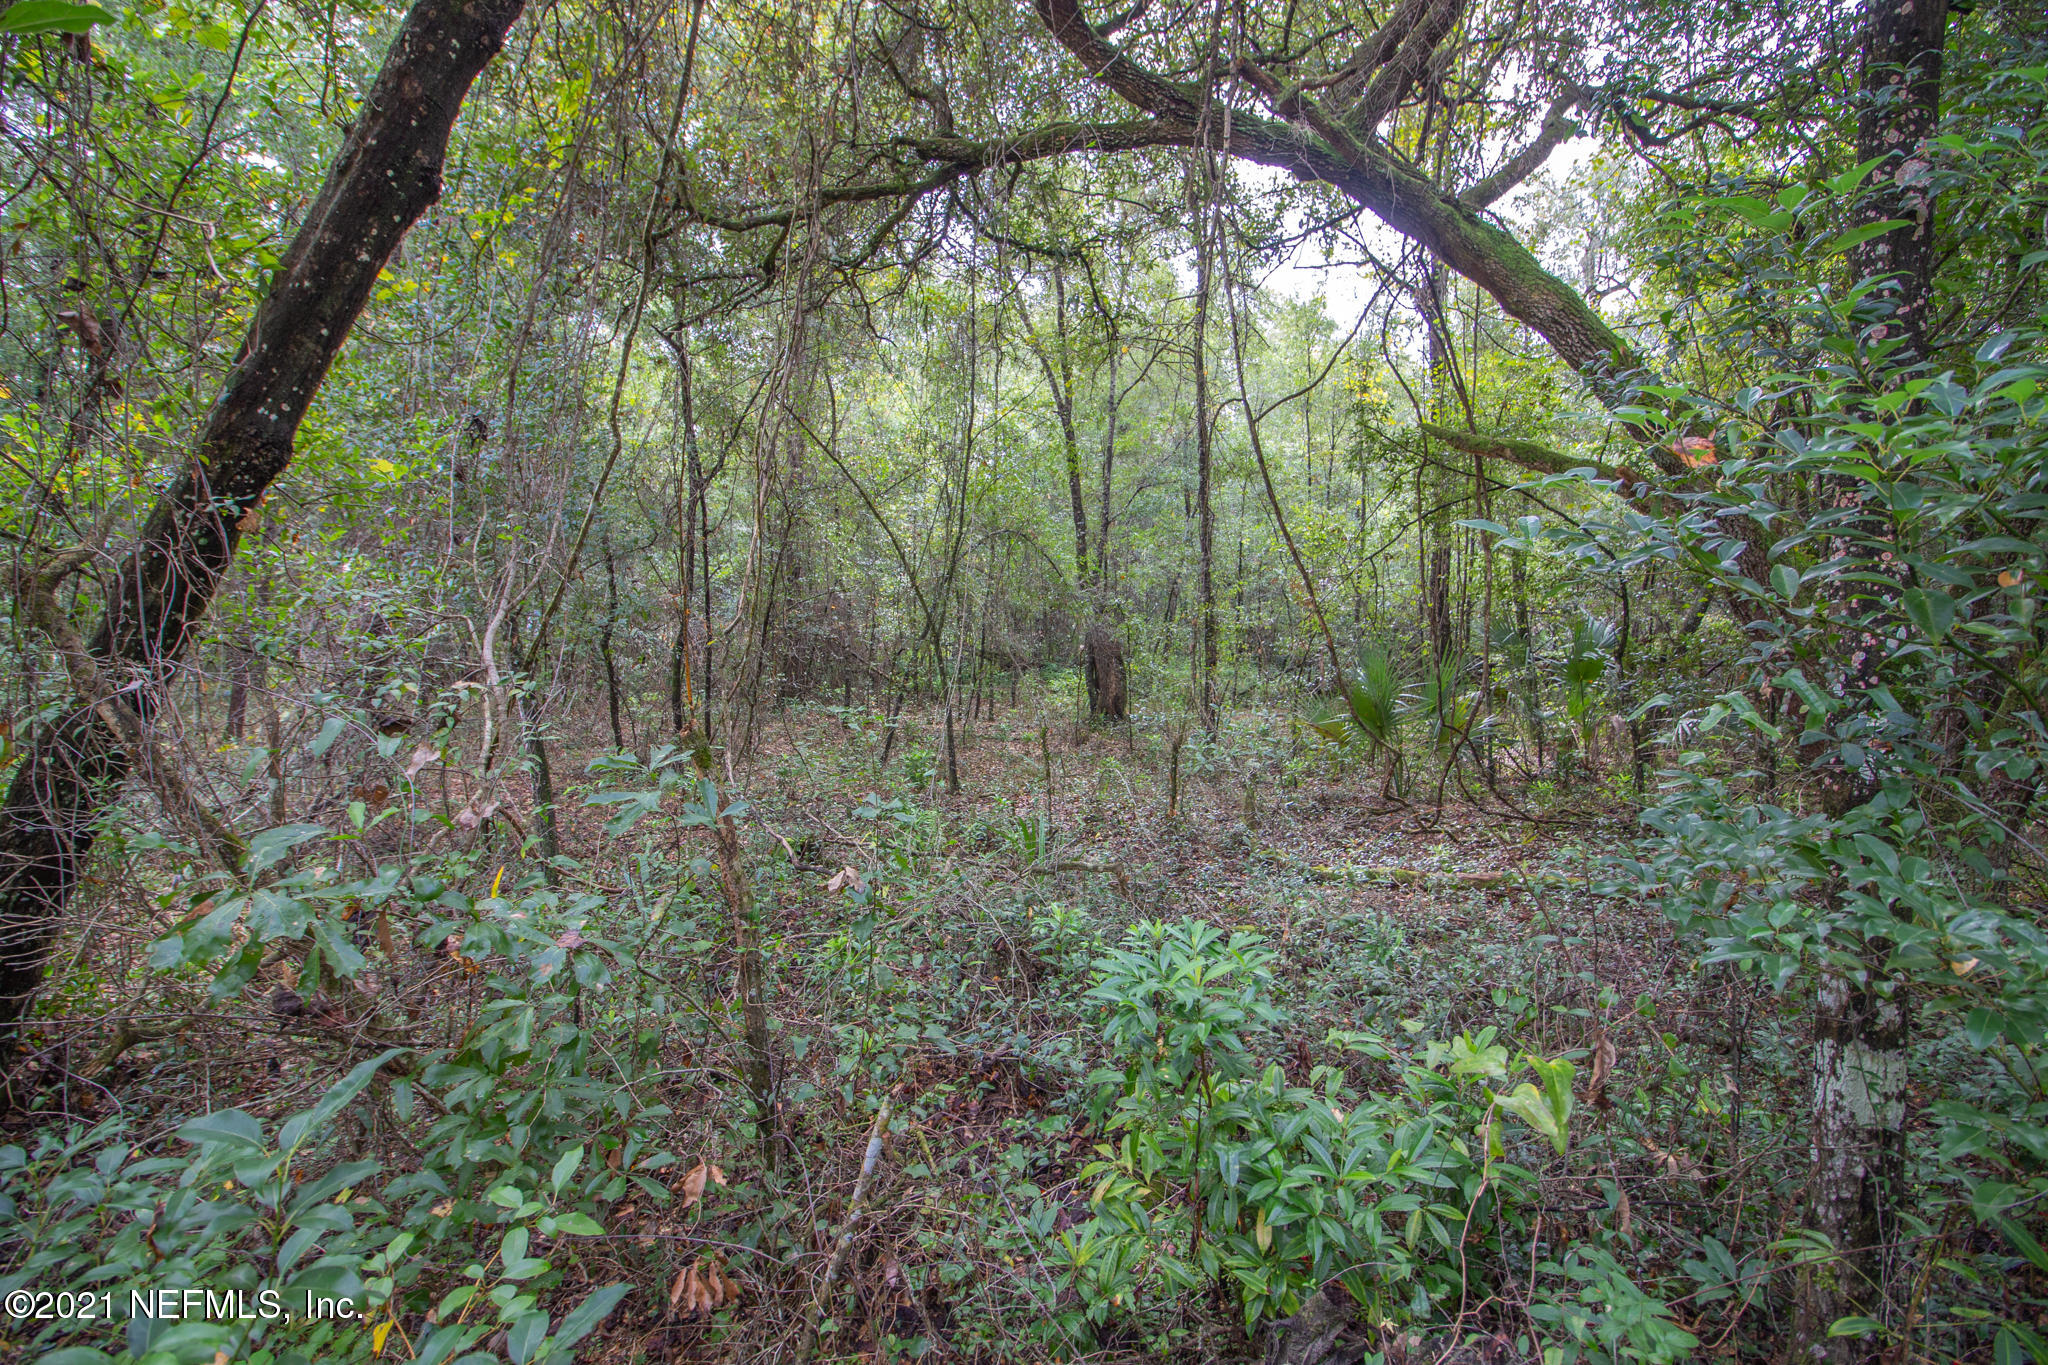 0 PRICE, HAWTHORNE, FLORIDA 32640, ,Vacant land,For sale,PRICE,1090097